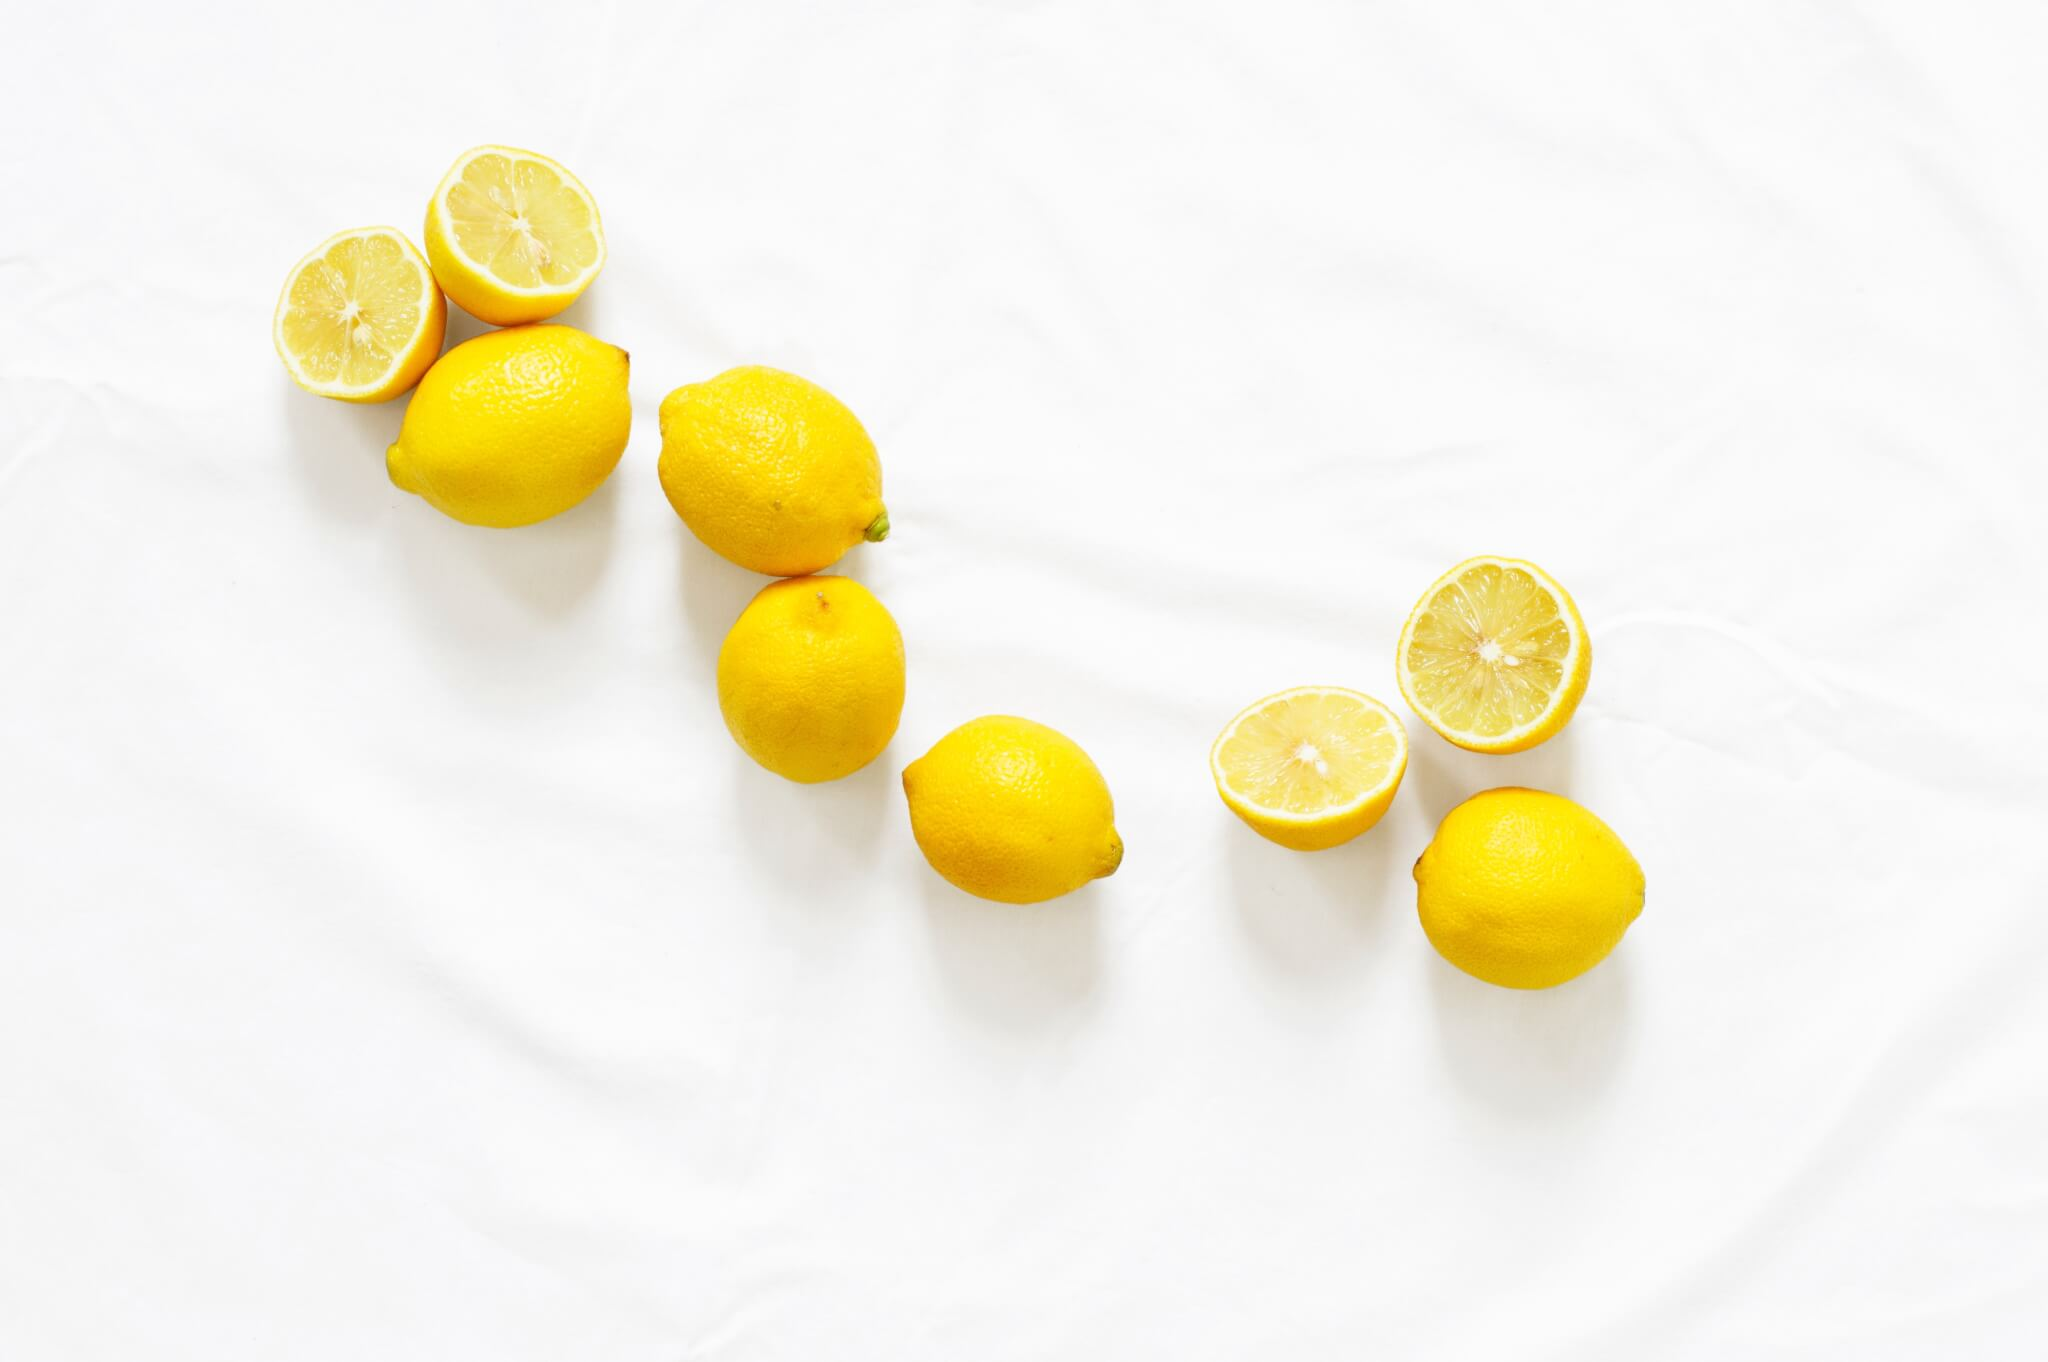 A picture of lemons full and sliced in half